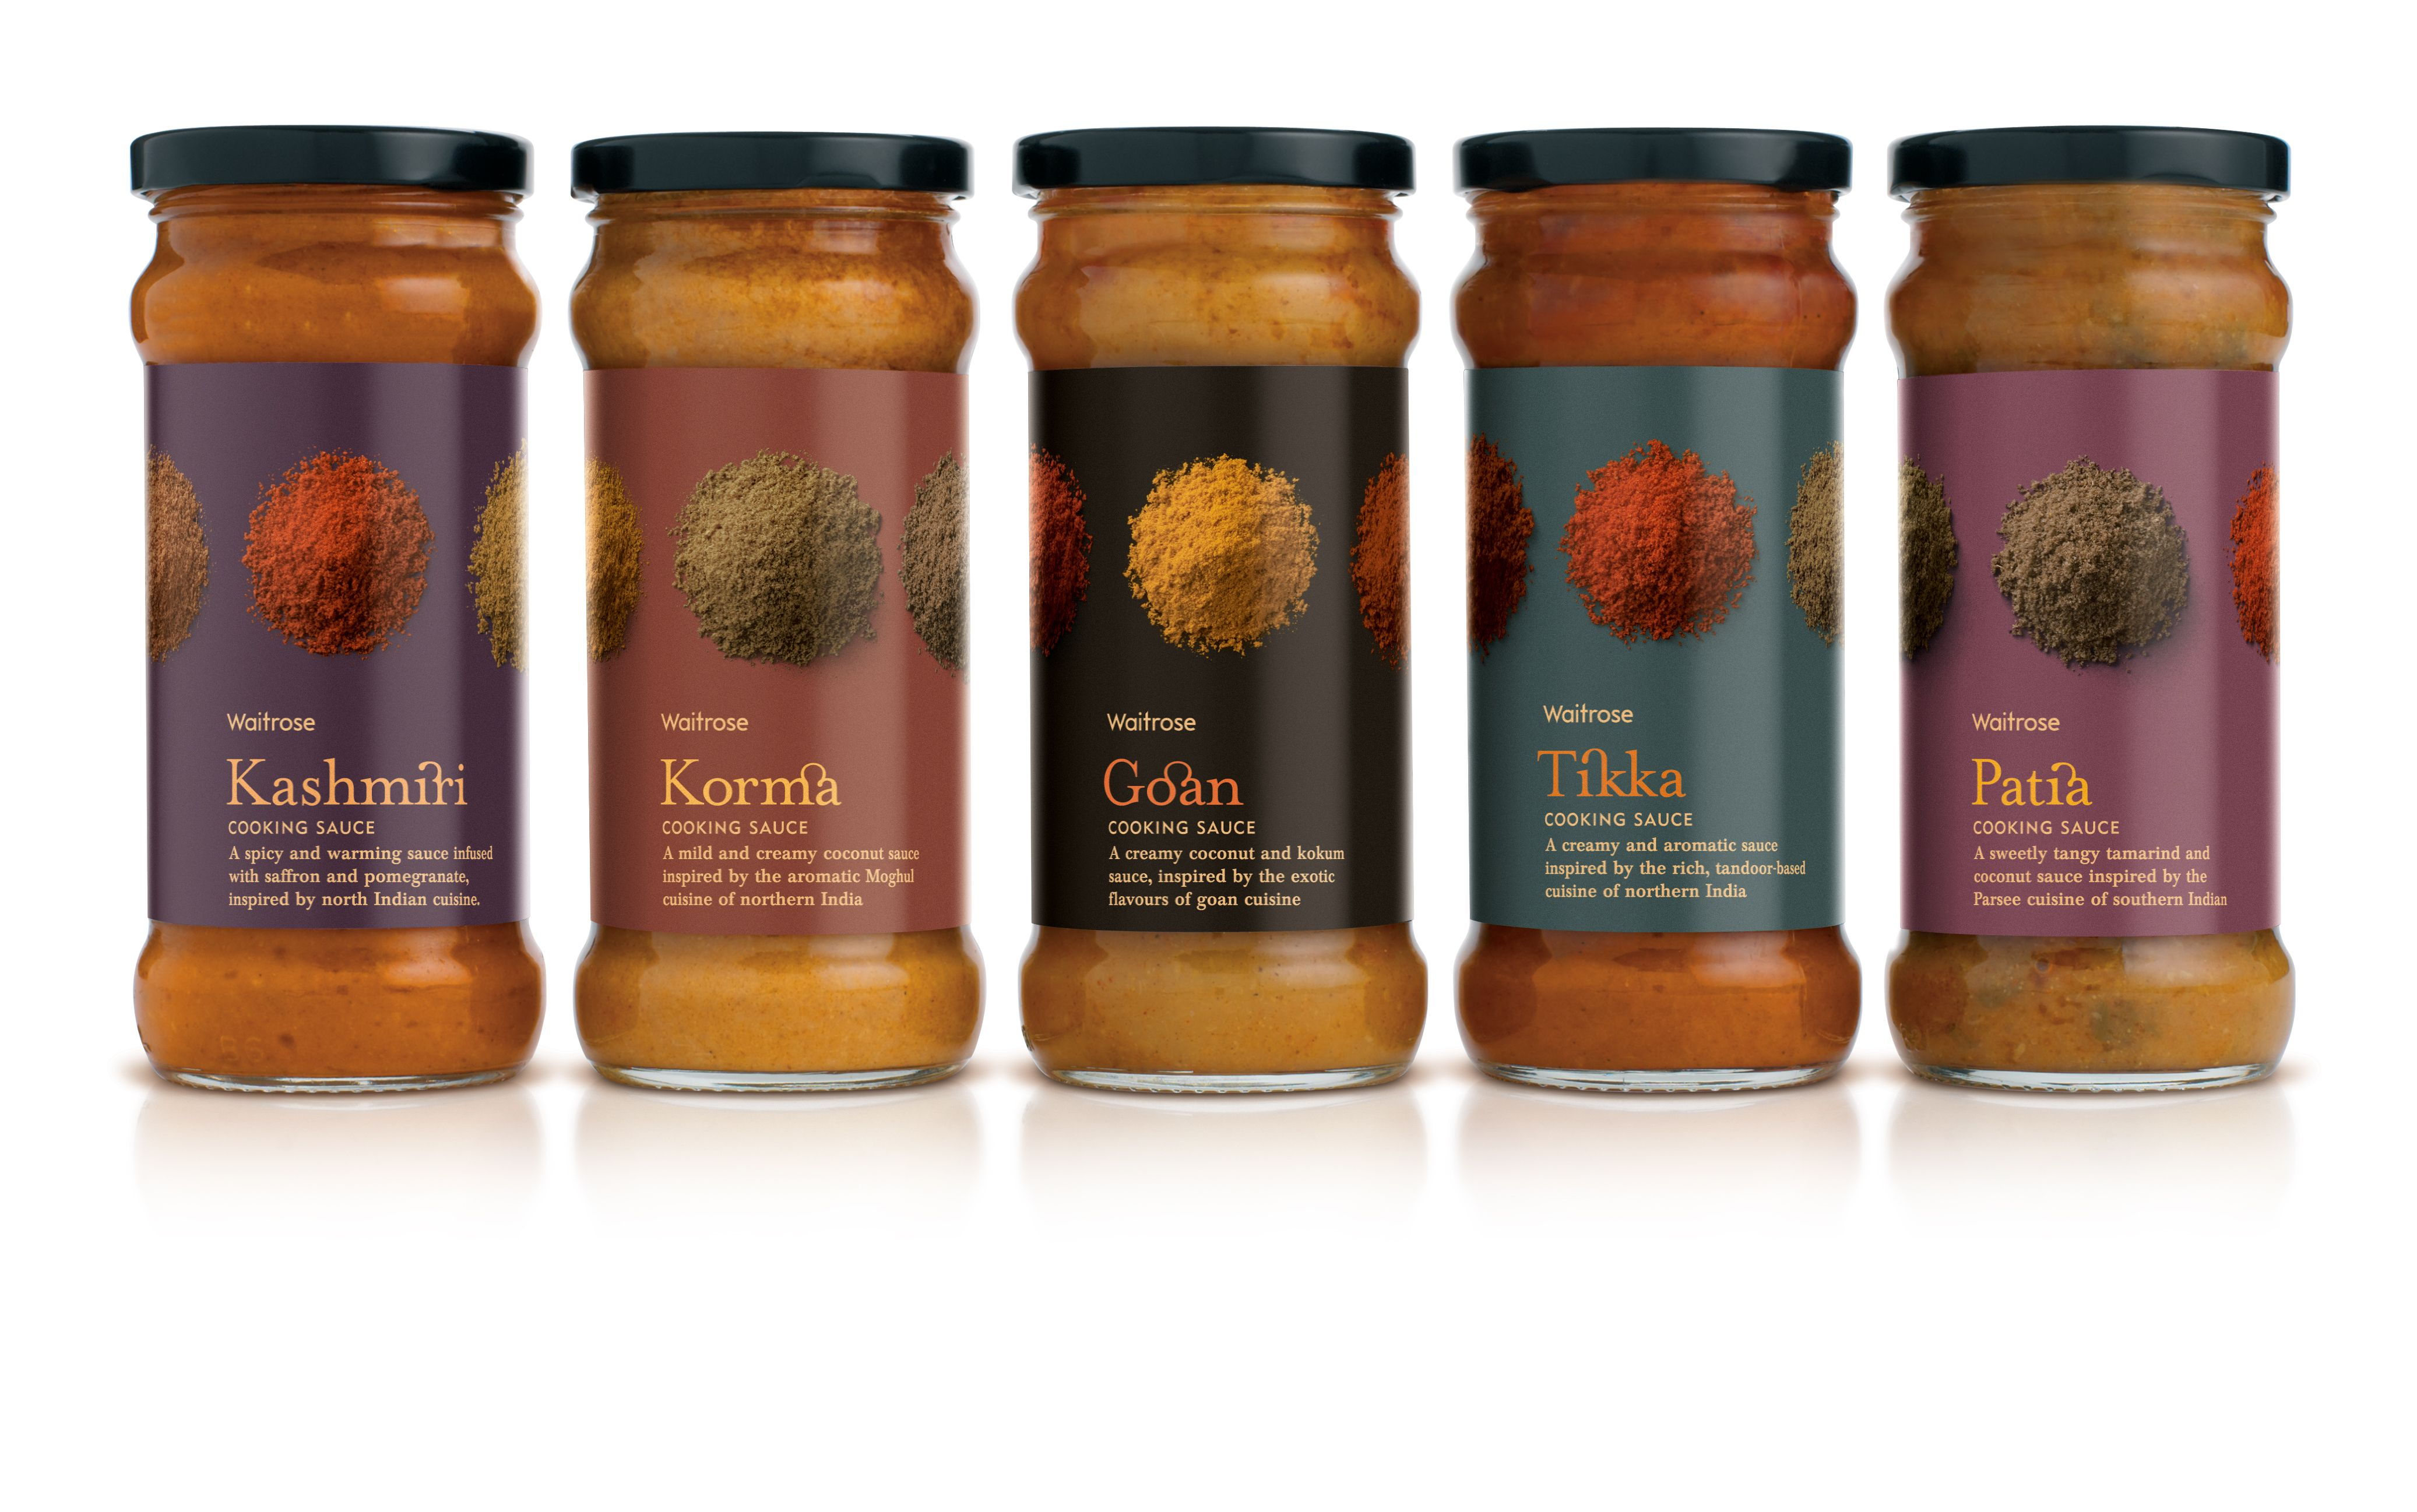 Waitrose Curry Sauce packaging. Designed by Turner Duckworth.